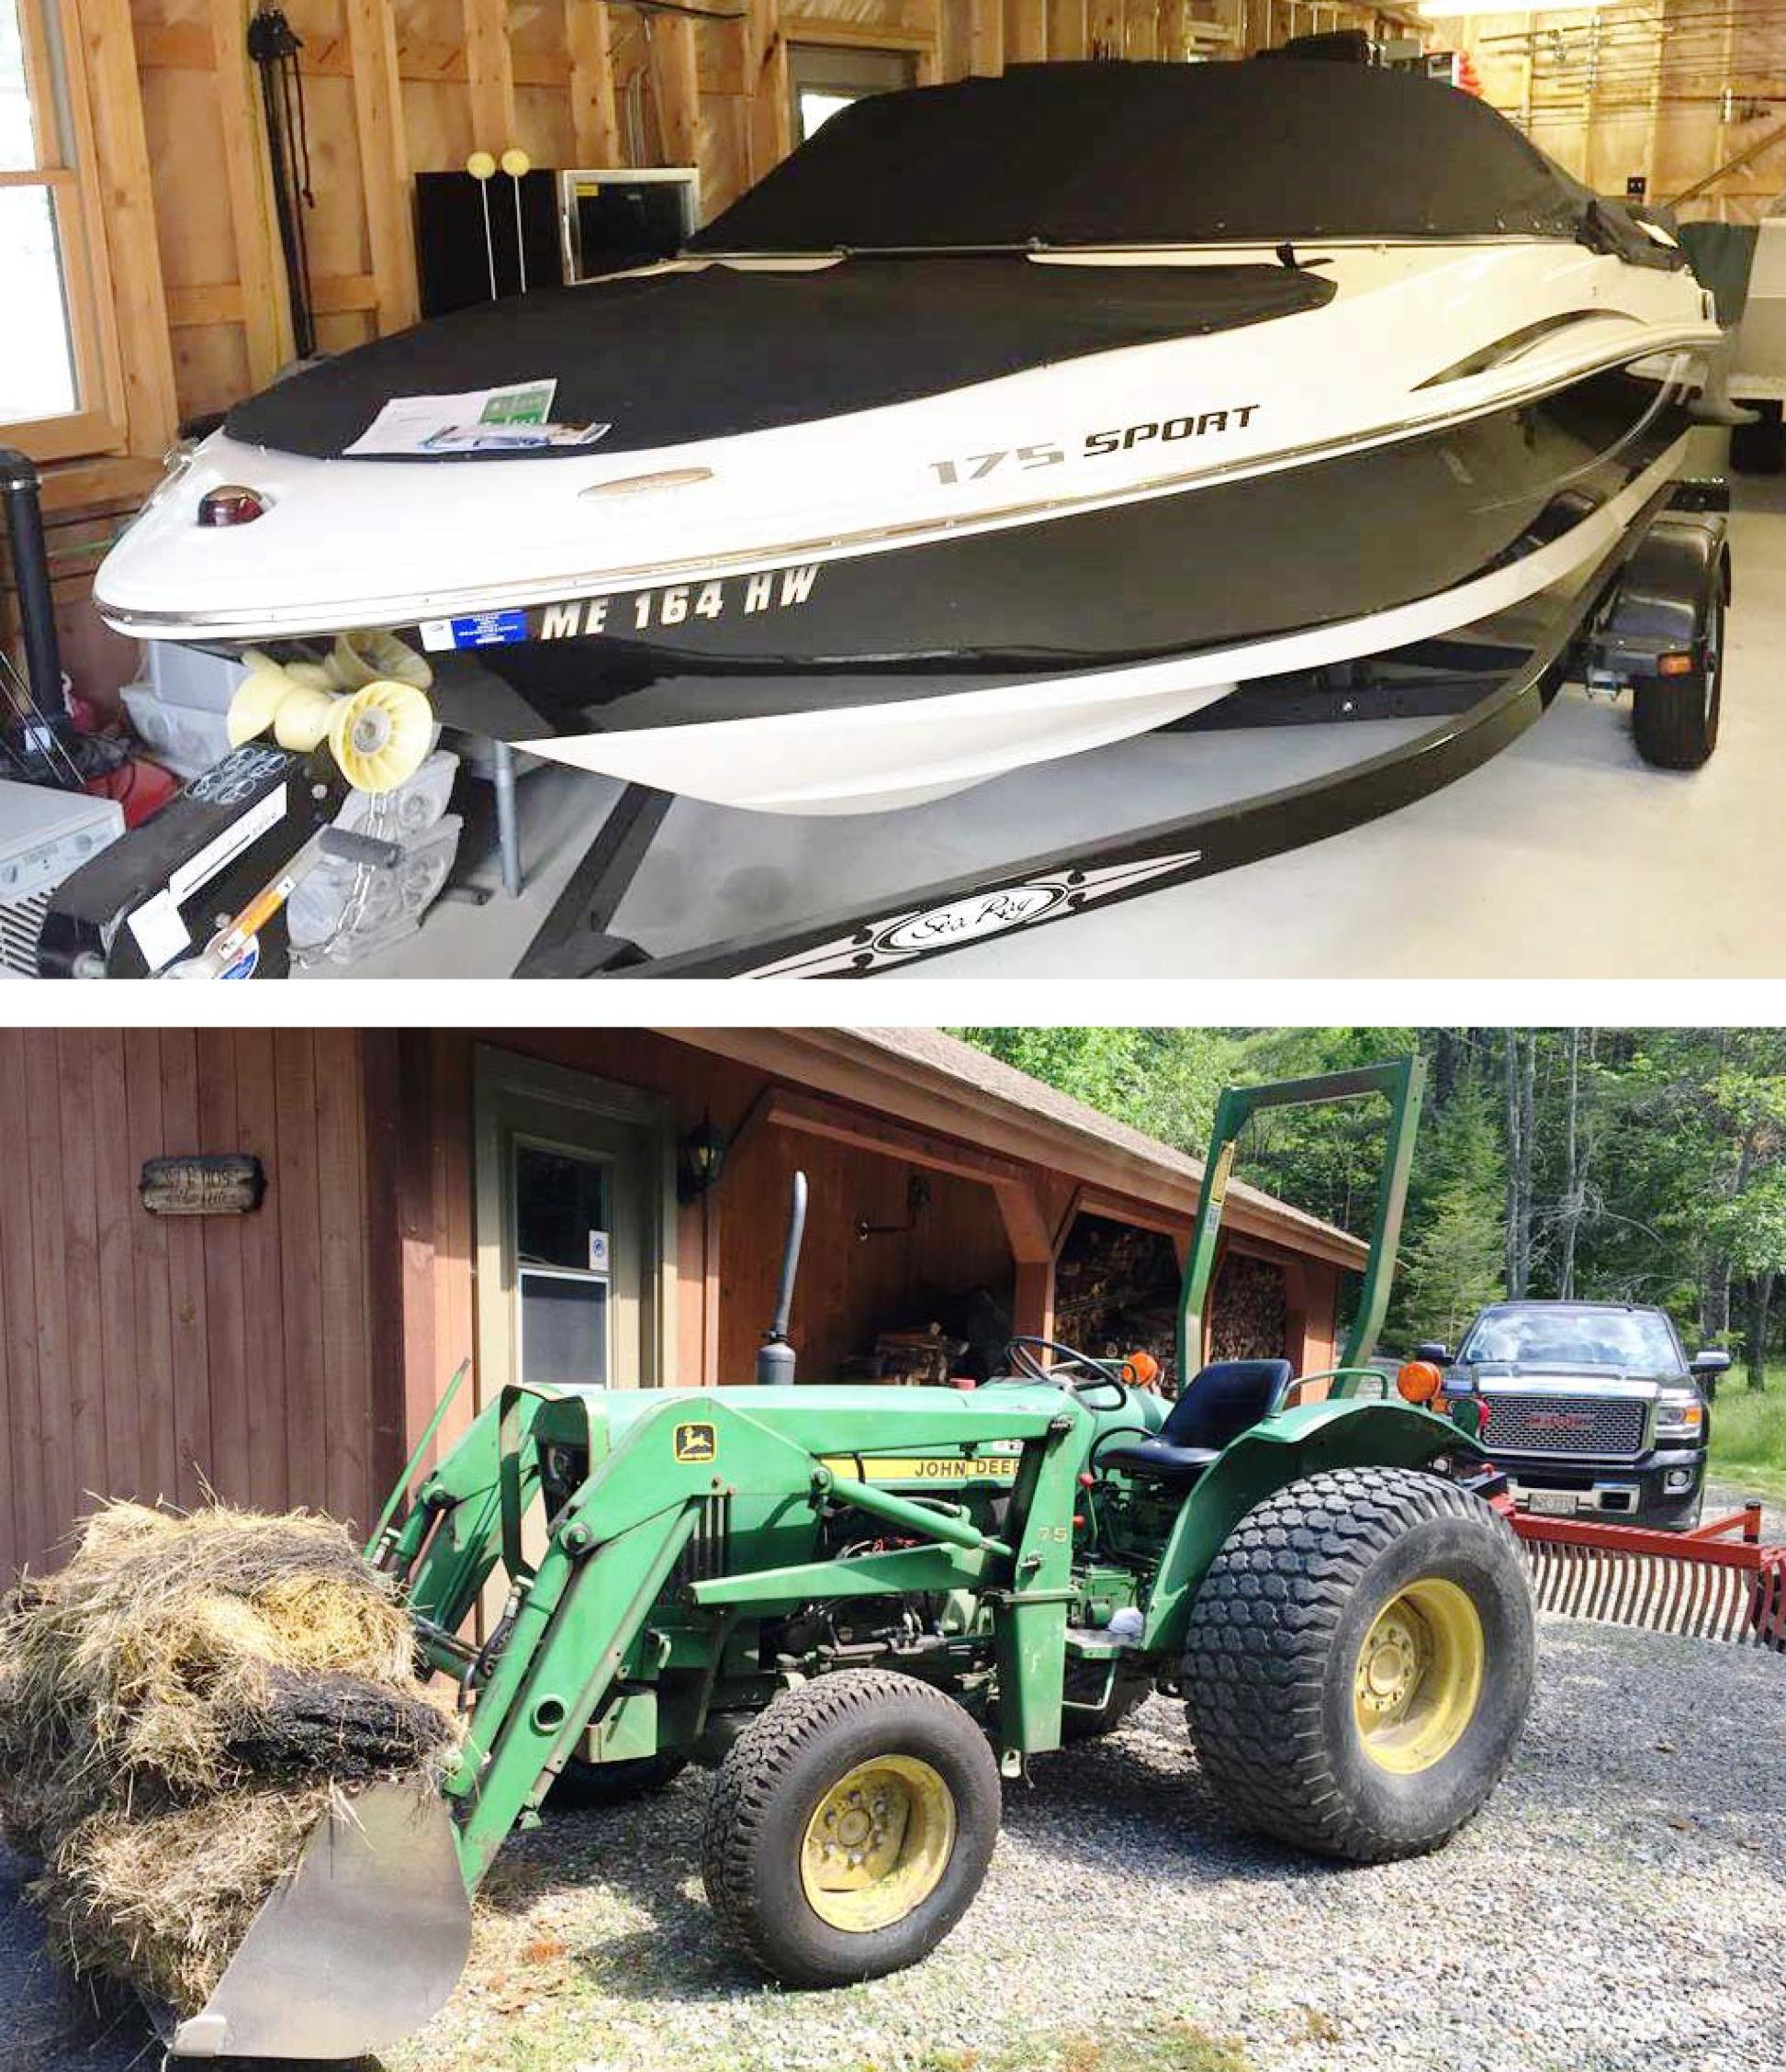 ONSITE & ONLINE AUCTION  09 SEA RAY 175SPORT, TRACTOR, SLEDS, SHOP EQ Auction